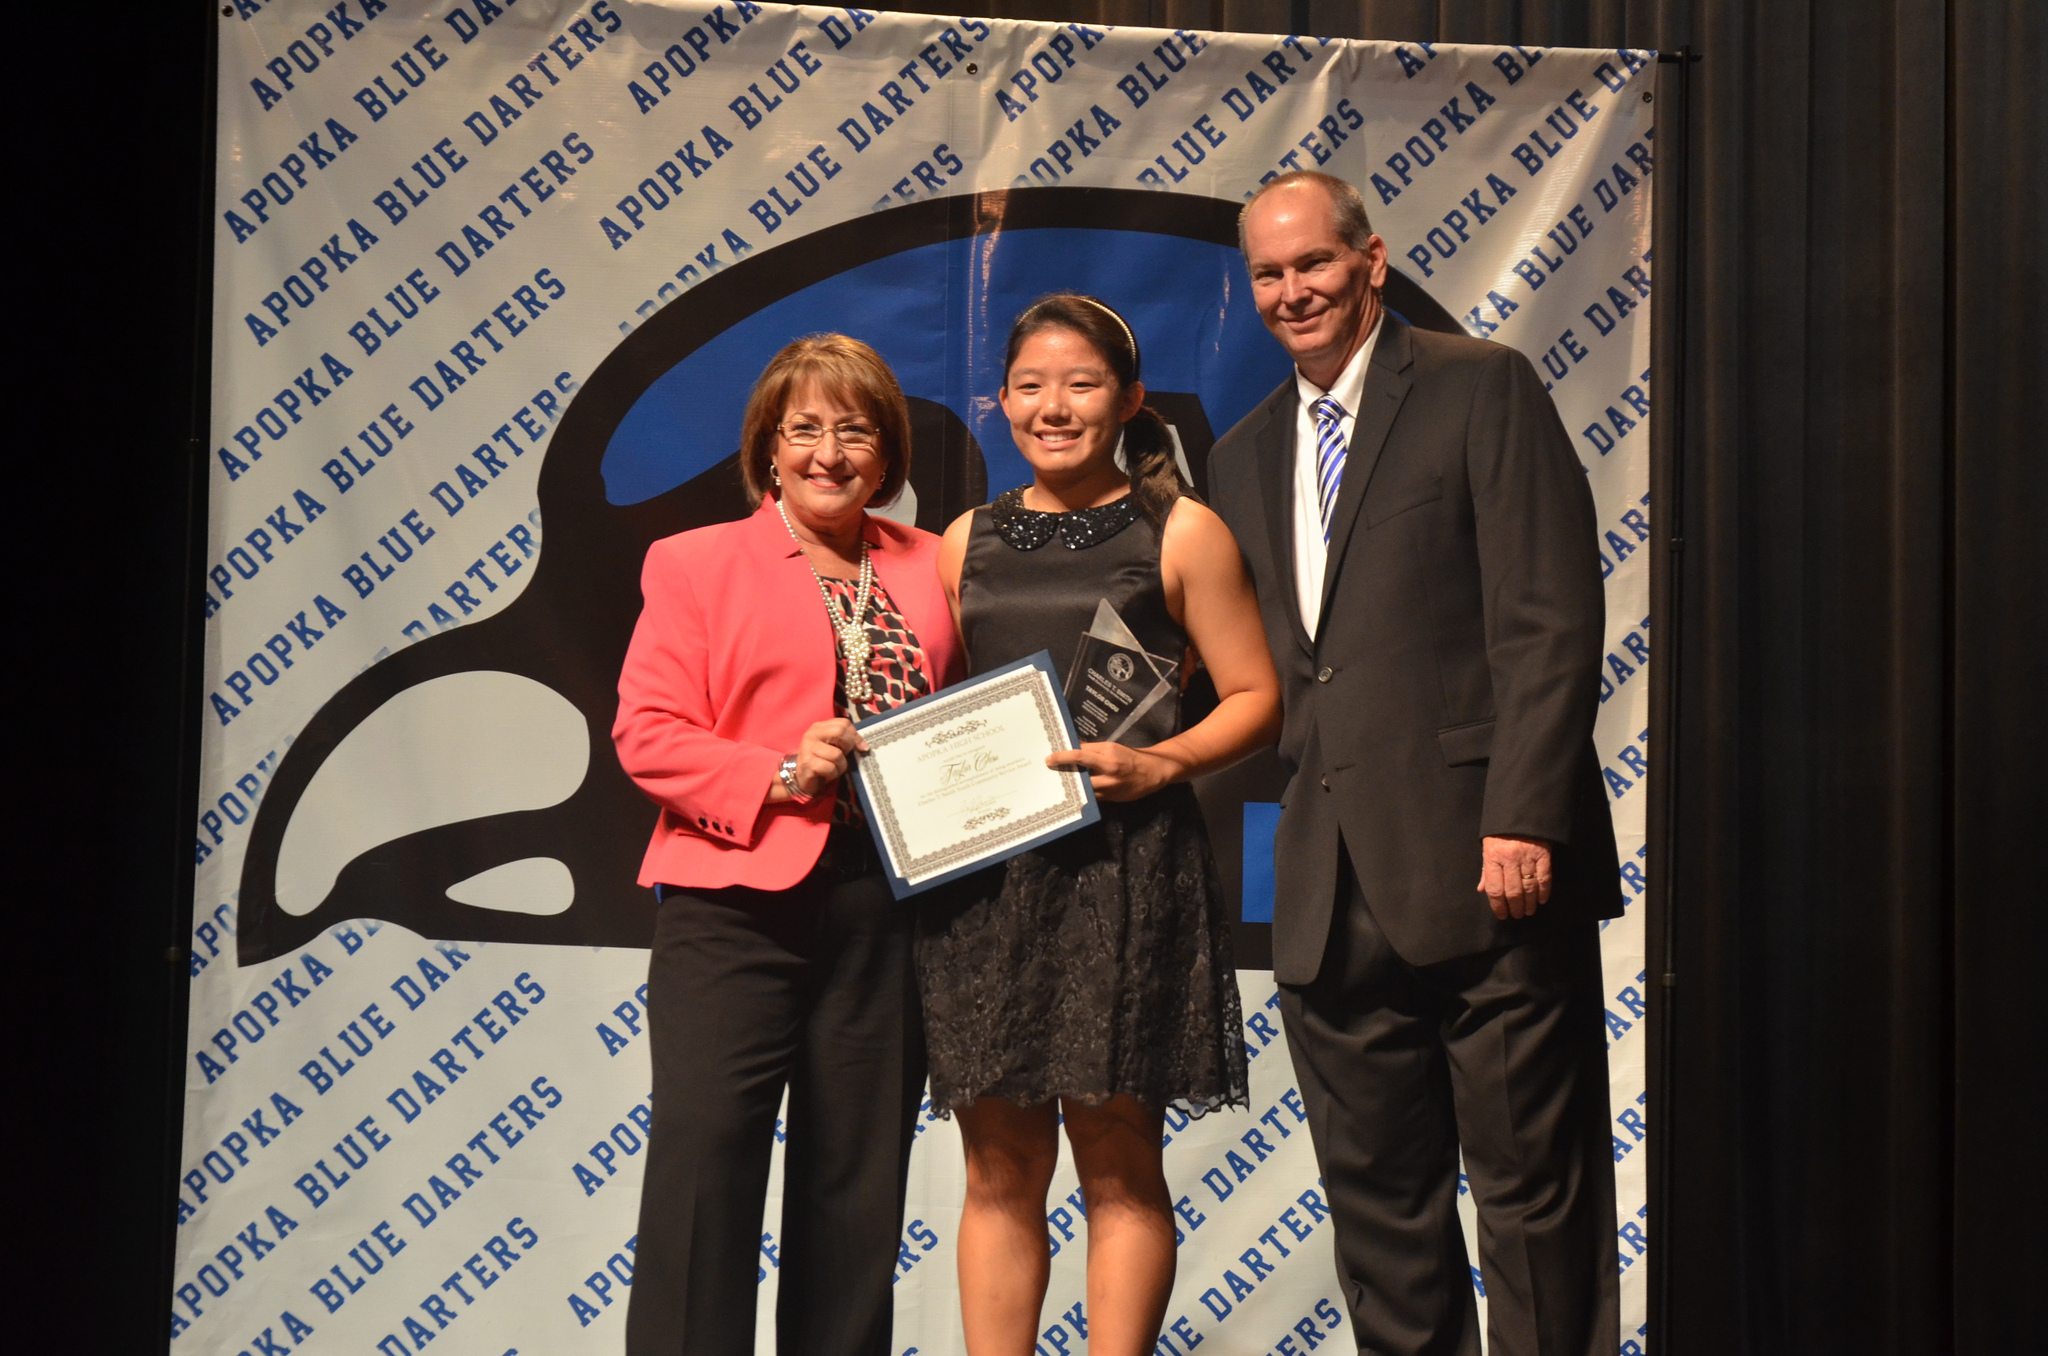 Mayor Jacobs presents award to Apopka High School student